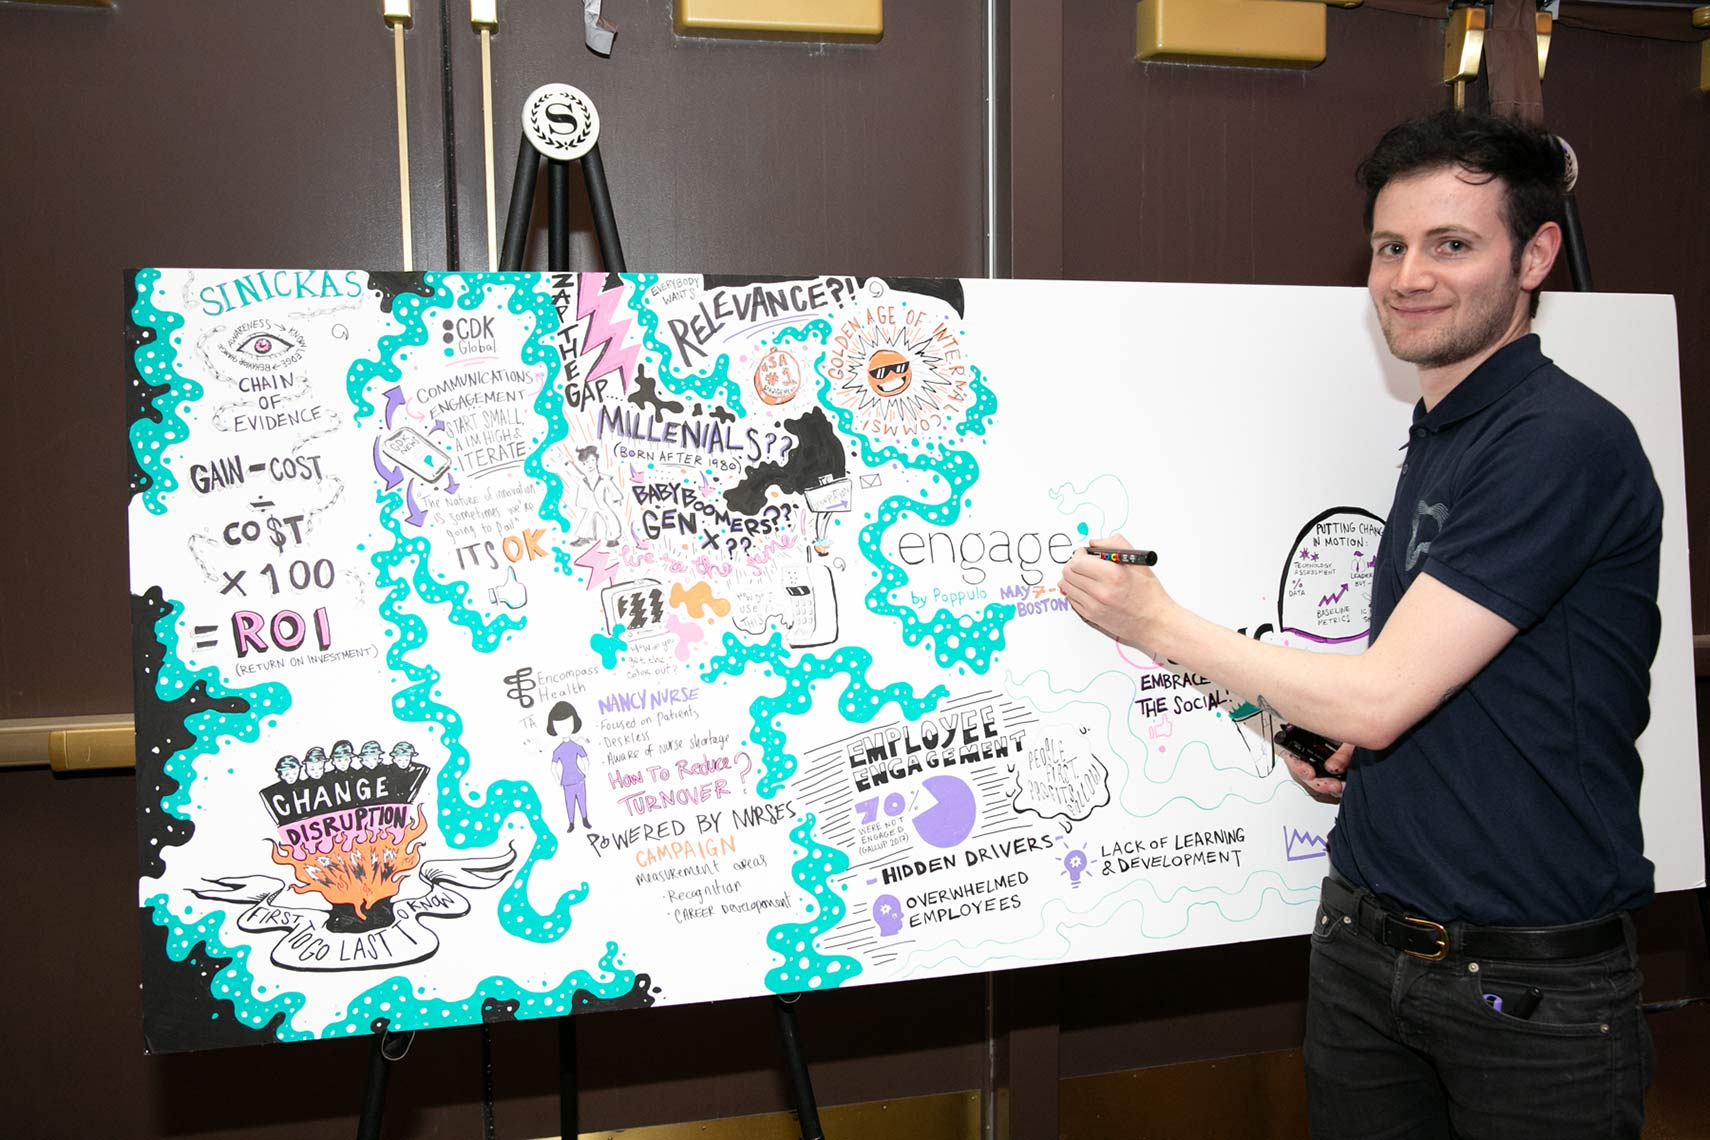 An artist creates a visual of the concepts discussed at Engage Boston